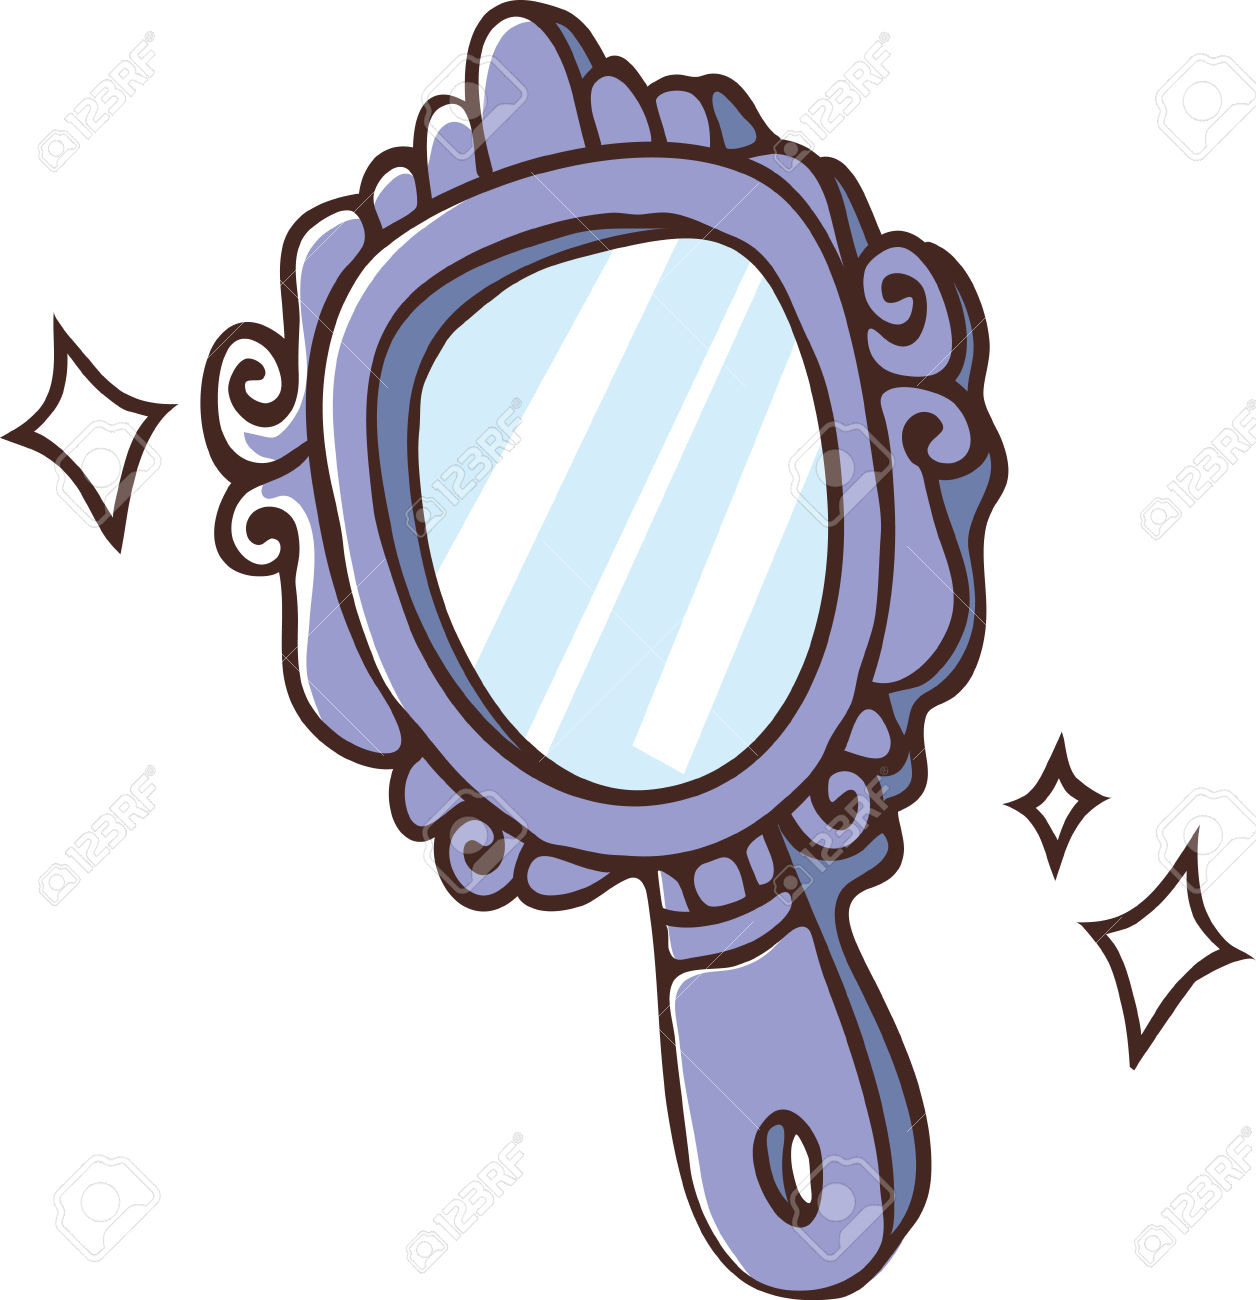 Mirror Image Clipart 20 Free Cliparts Download Images On